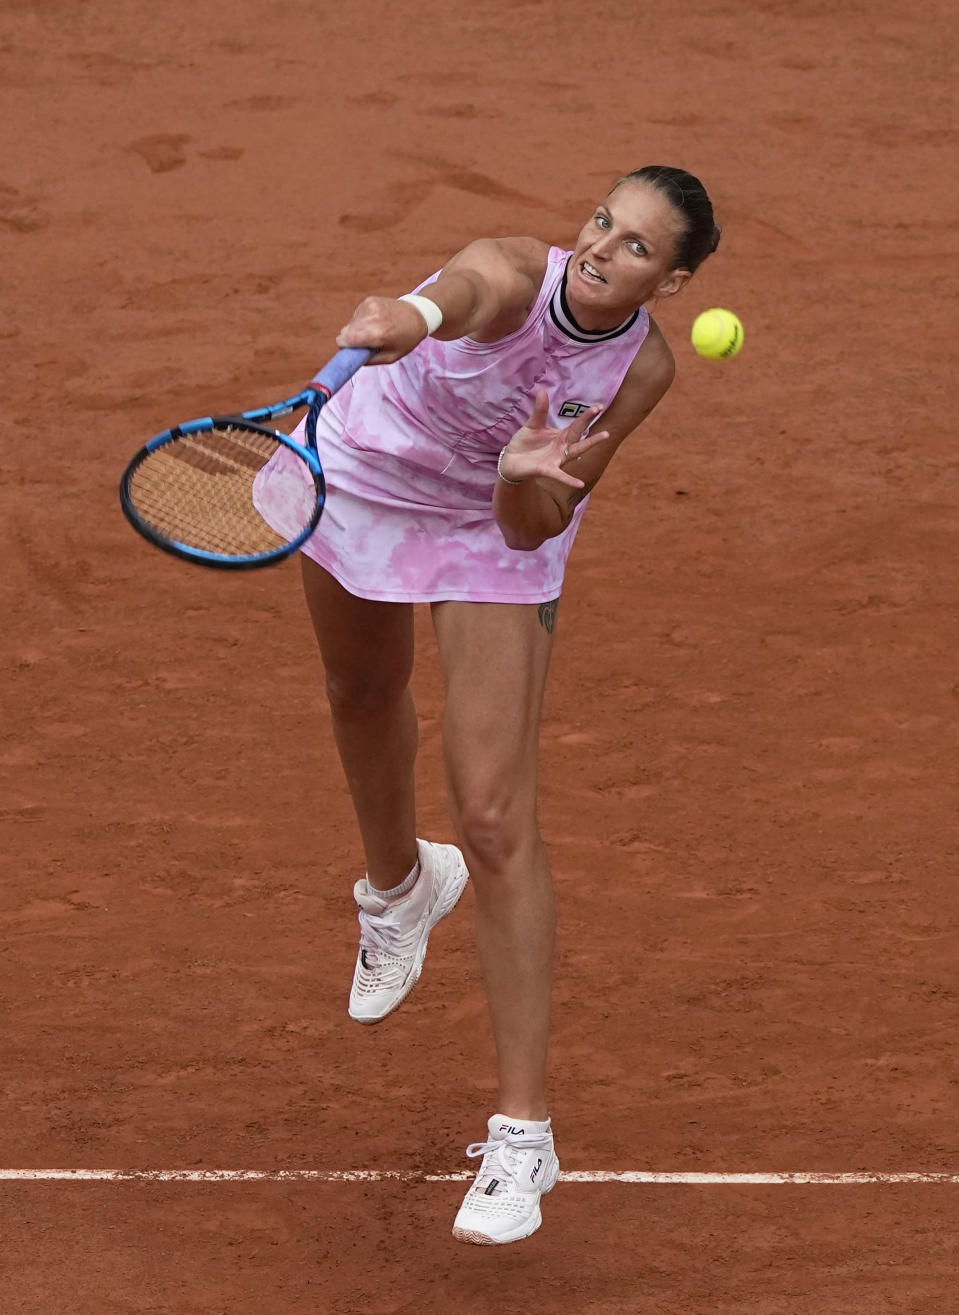 Czech Republic's Karolina Pliskova serves to United States's Sloane Stephens during their second round match on day 5, of the French Open tennis tournament at Roland Garros in Paris, France, Thursday, June 3, 2021. (AP Photo/Michel Euler)